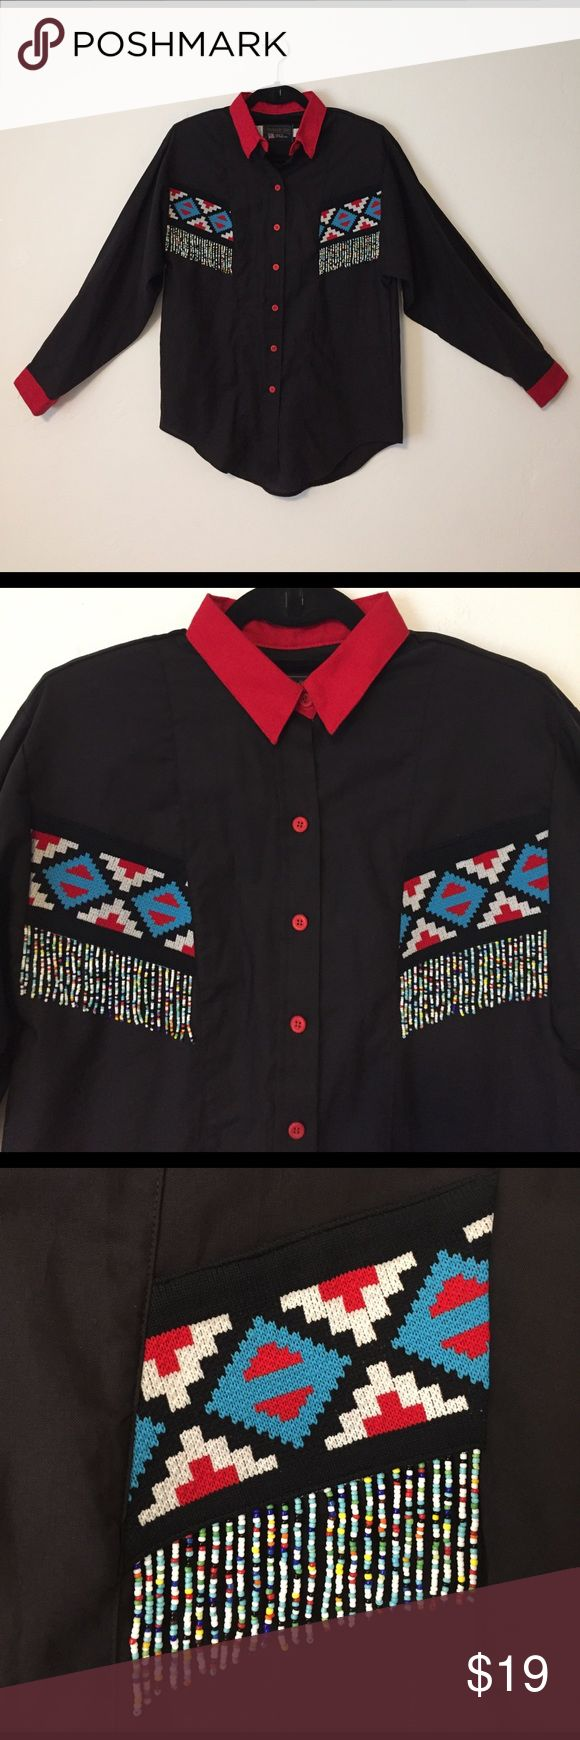 "VINTAGE WESTERN Rare Bead Fringe Embroidered Shirt Mint condition👌🏼PANHANDLE SLIM brand authentic button down with Native American style beaded fringe and embroidery 🙌🏼 Get your cowgirl rodeo star on ⭐️ Great for the authentic western style chic OR Halloween theme night. Women's Small. Measures 20"" armpit to armpit; 28"" top shoulder to bottom hem; 22.5"" sleeve length. 100% Cotton to keep you cool when you're rootin' tootin' square dancin' gets you all hot and out of sorts✨ Machine…"